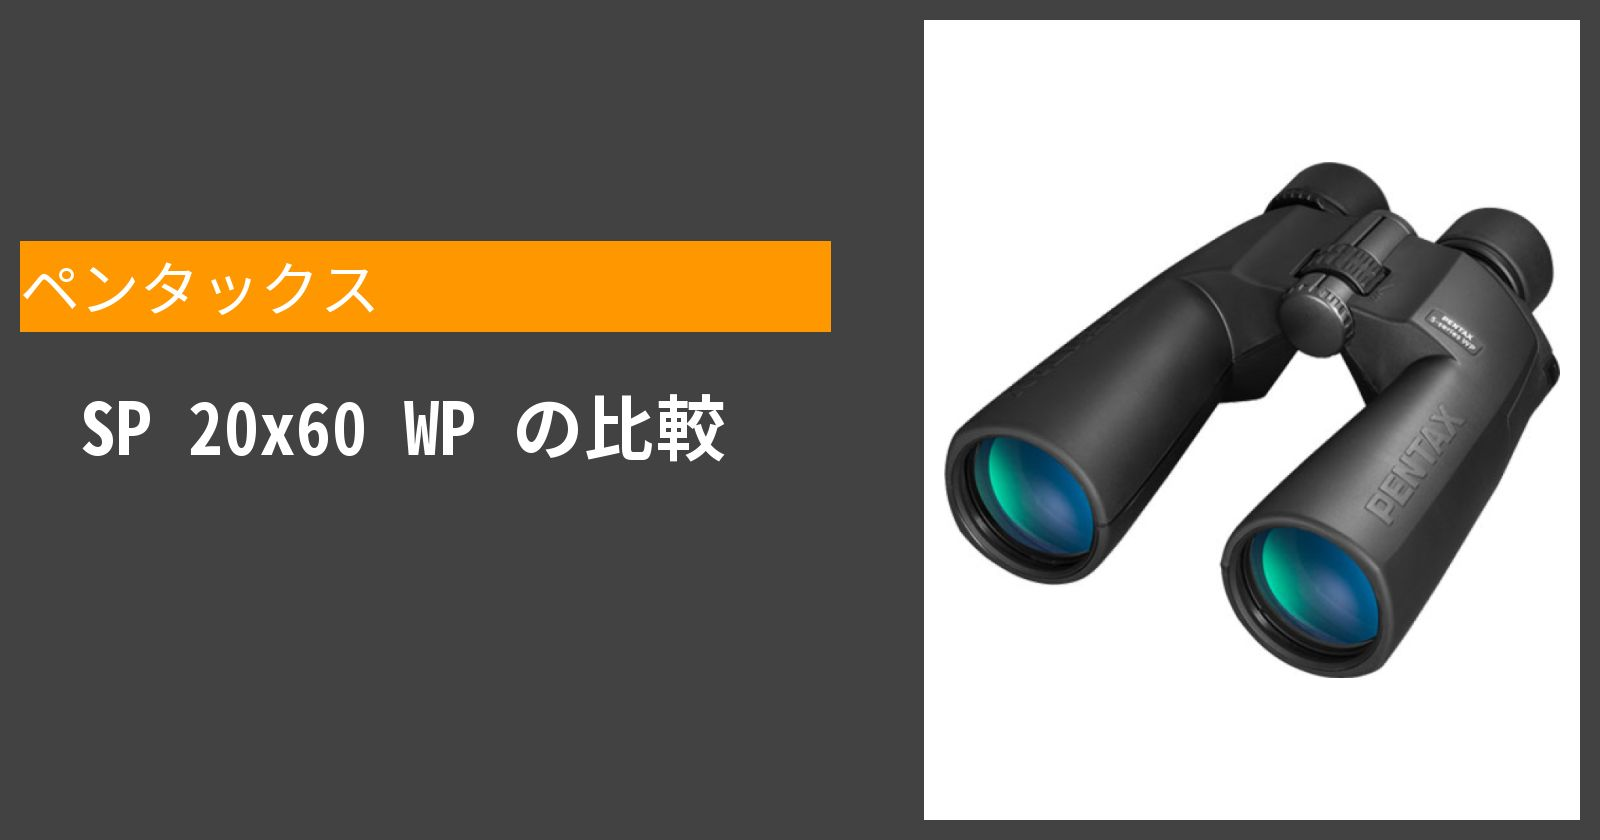 SP 20x60 WPを徹底評価